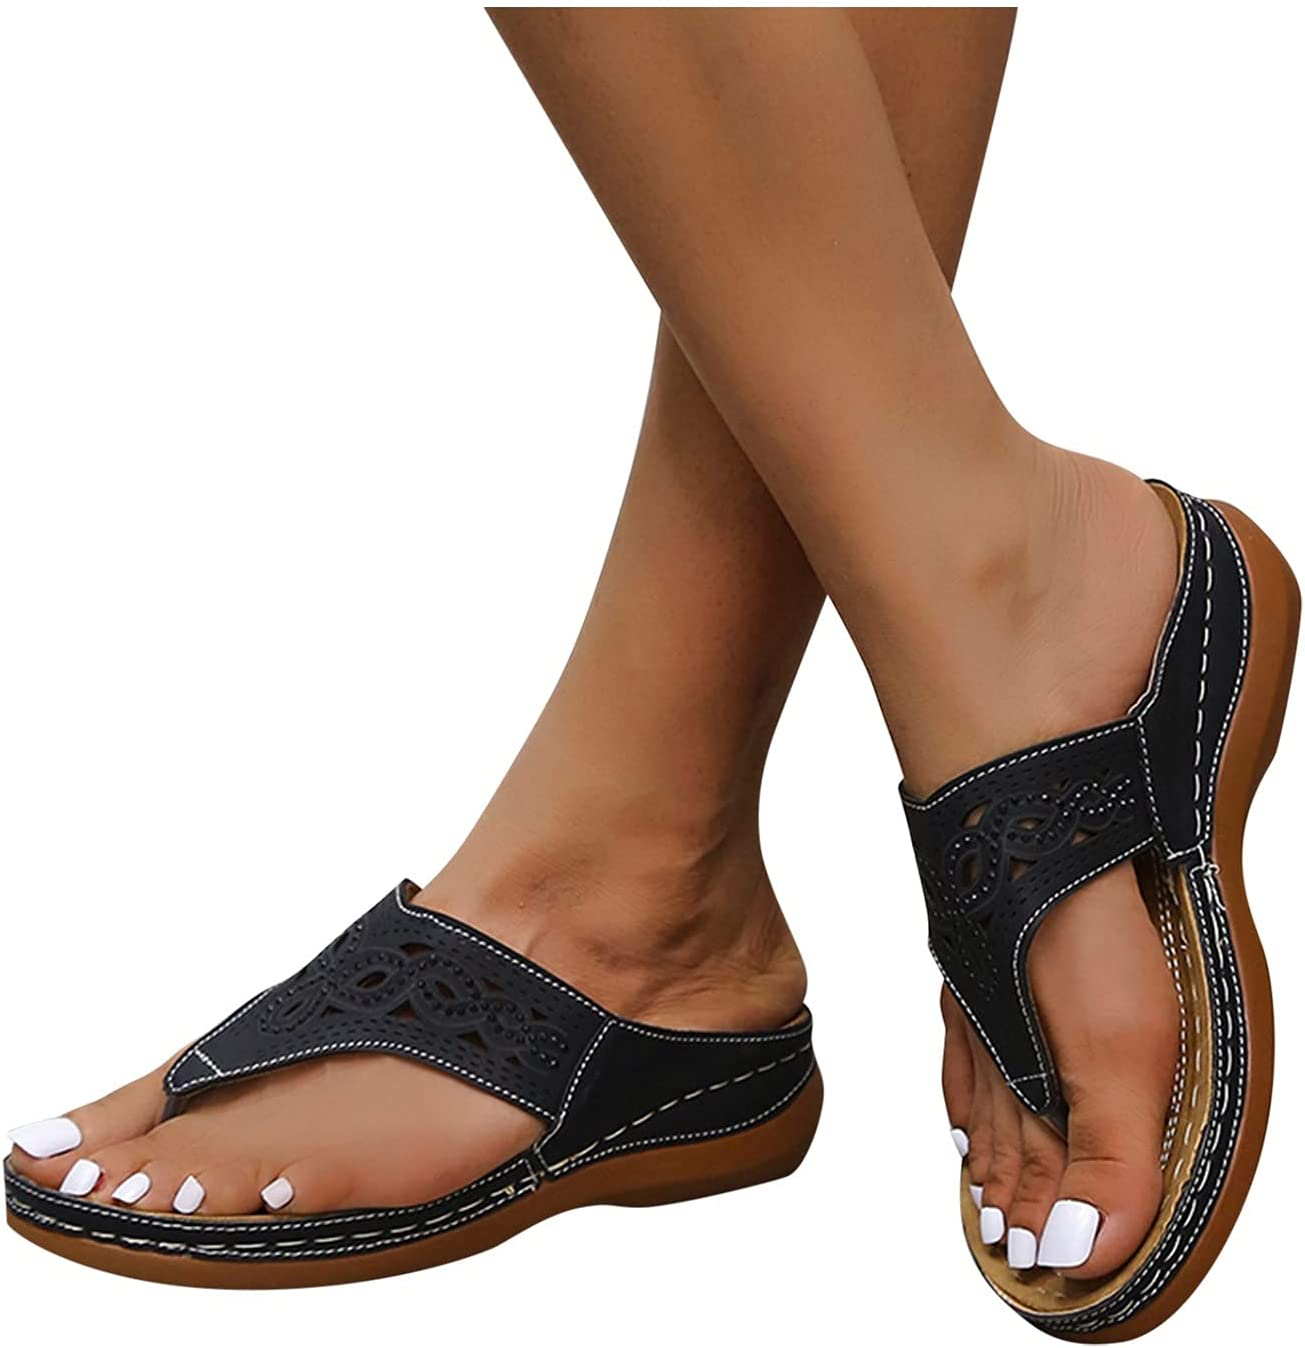 Olymmont Women's Slip On Sandals Casual Summer with Arch Support Flats Hollow Out Open Toe Breathable Slides Soft Comfortable Dressy Trendy Slippers (Black, 9.5-10)